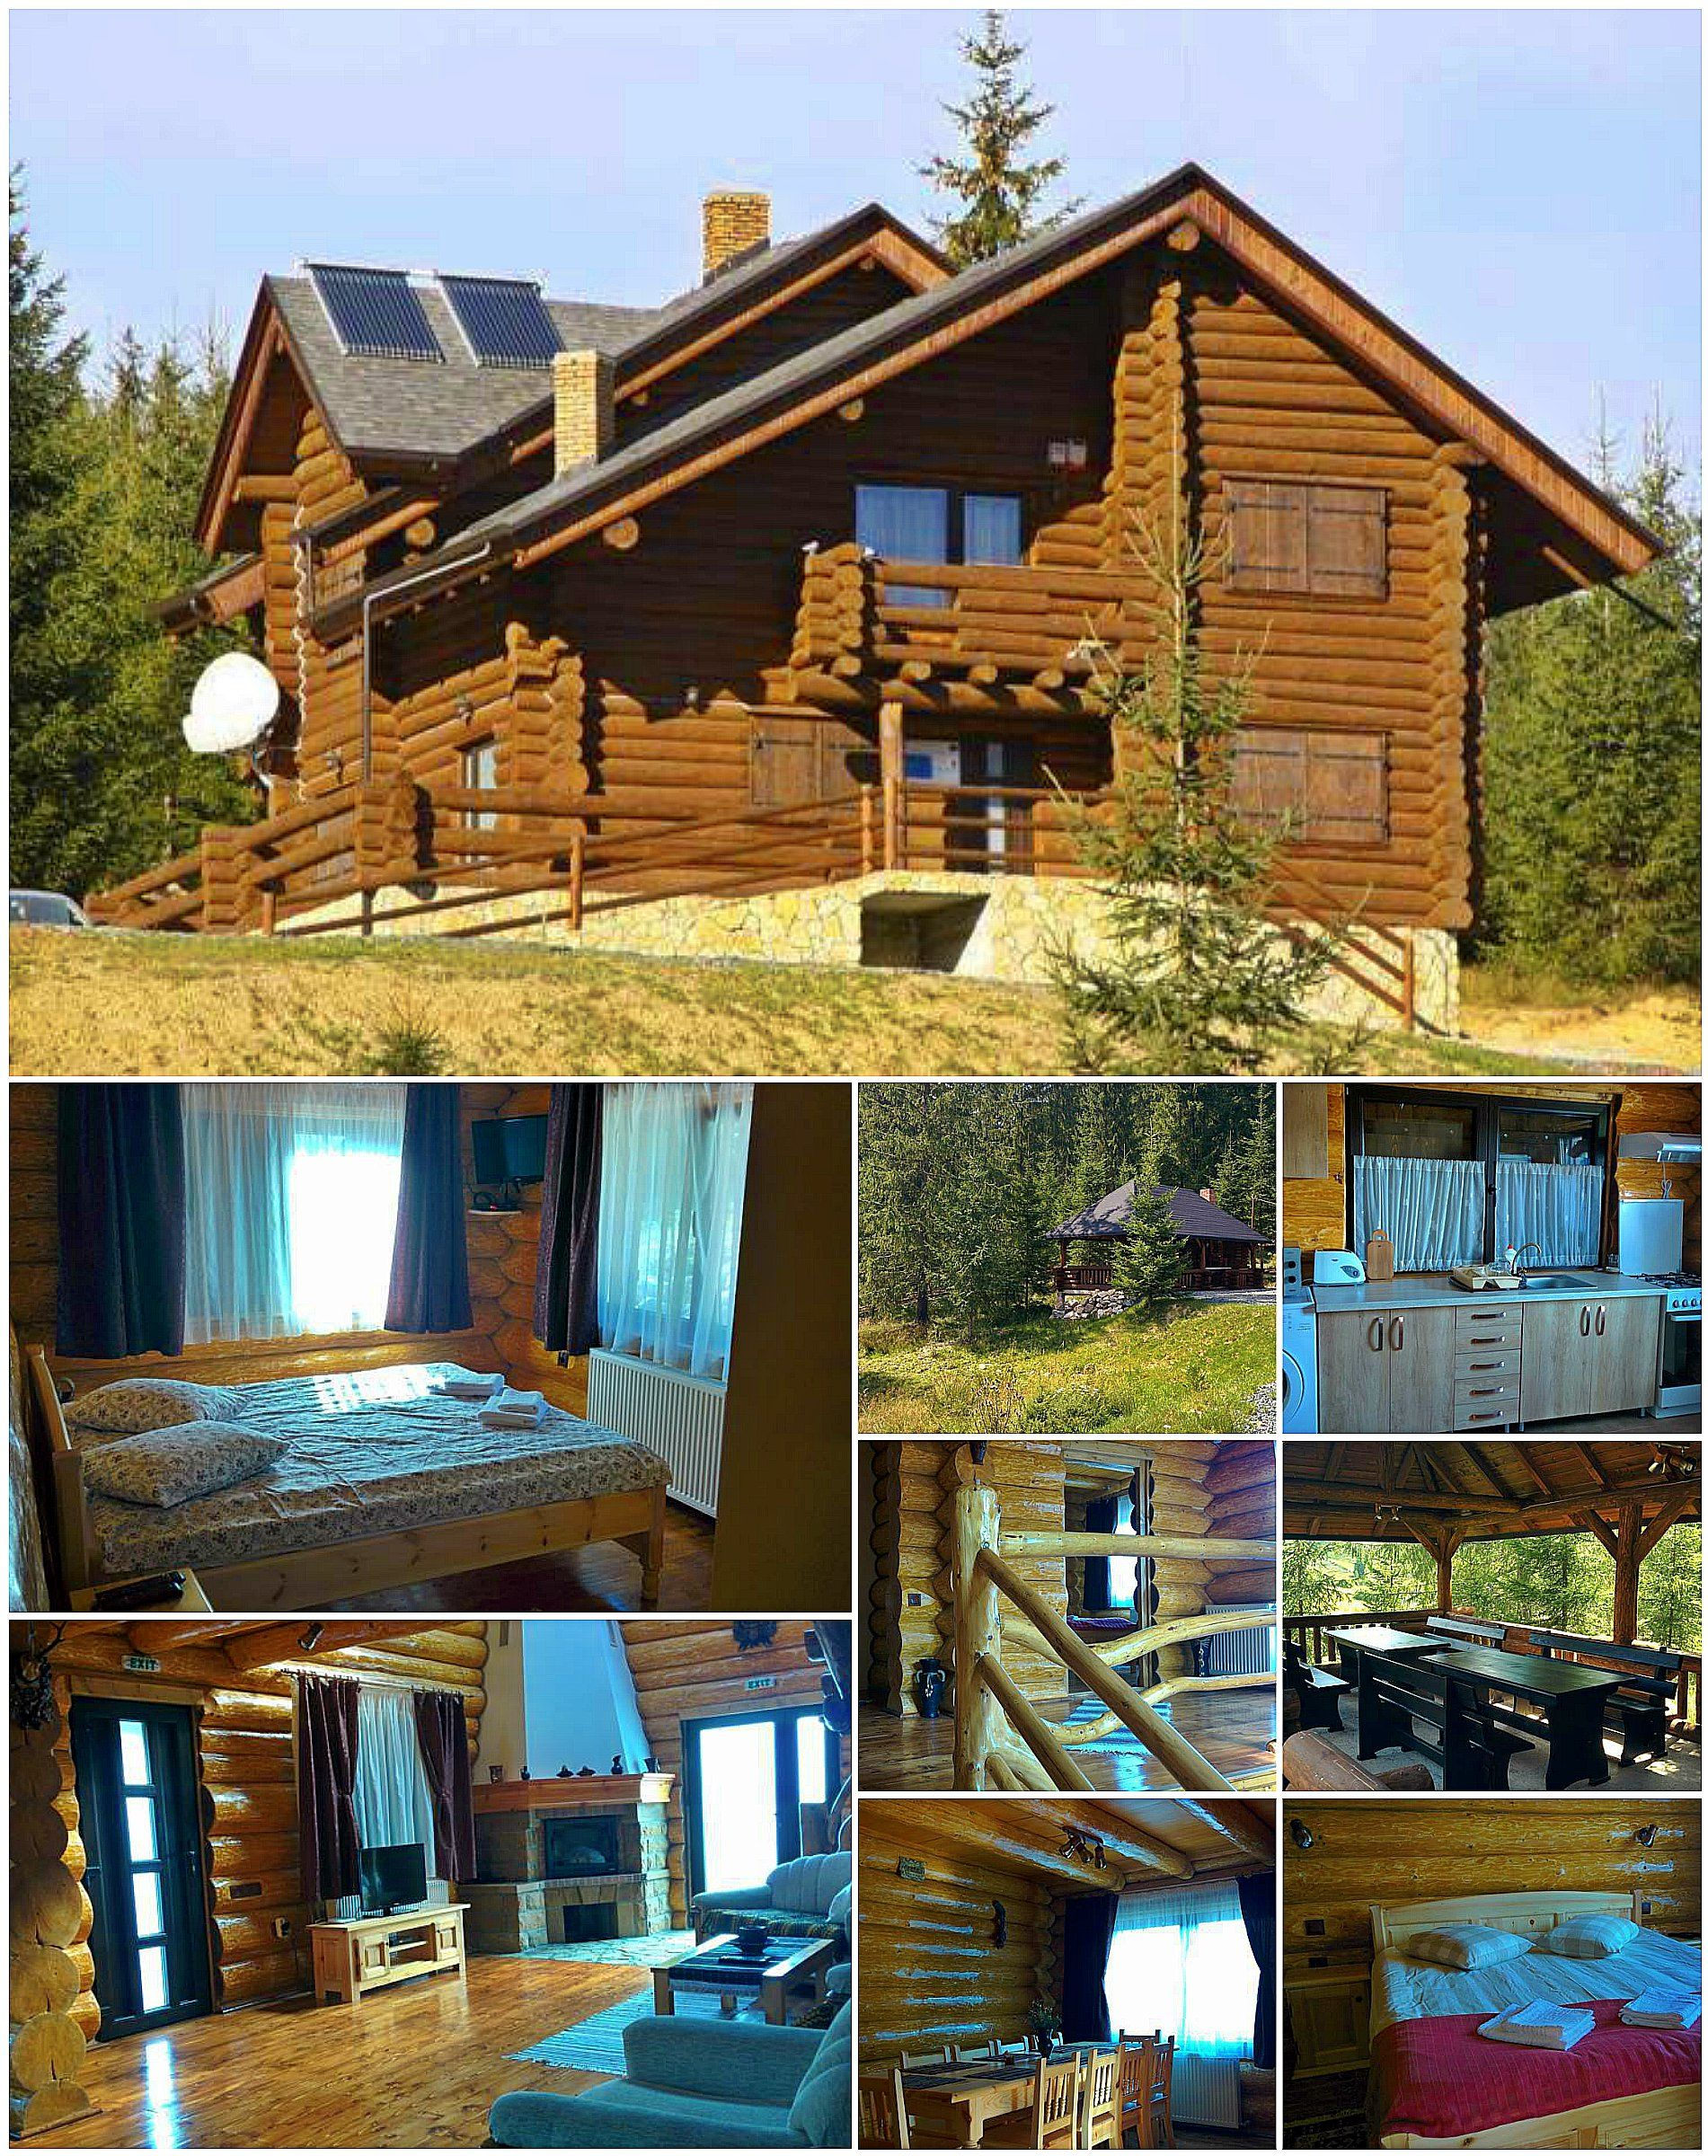 build cabin plans neoteric cabins square lovely architecture homes of a new kits building home house foot designs arive and spanish marvelous in cost log utah fork builders to rambler